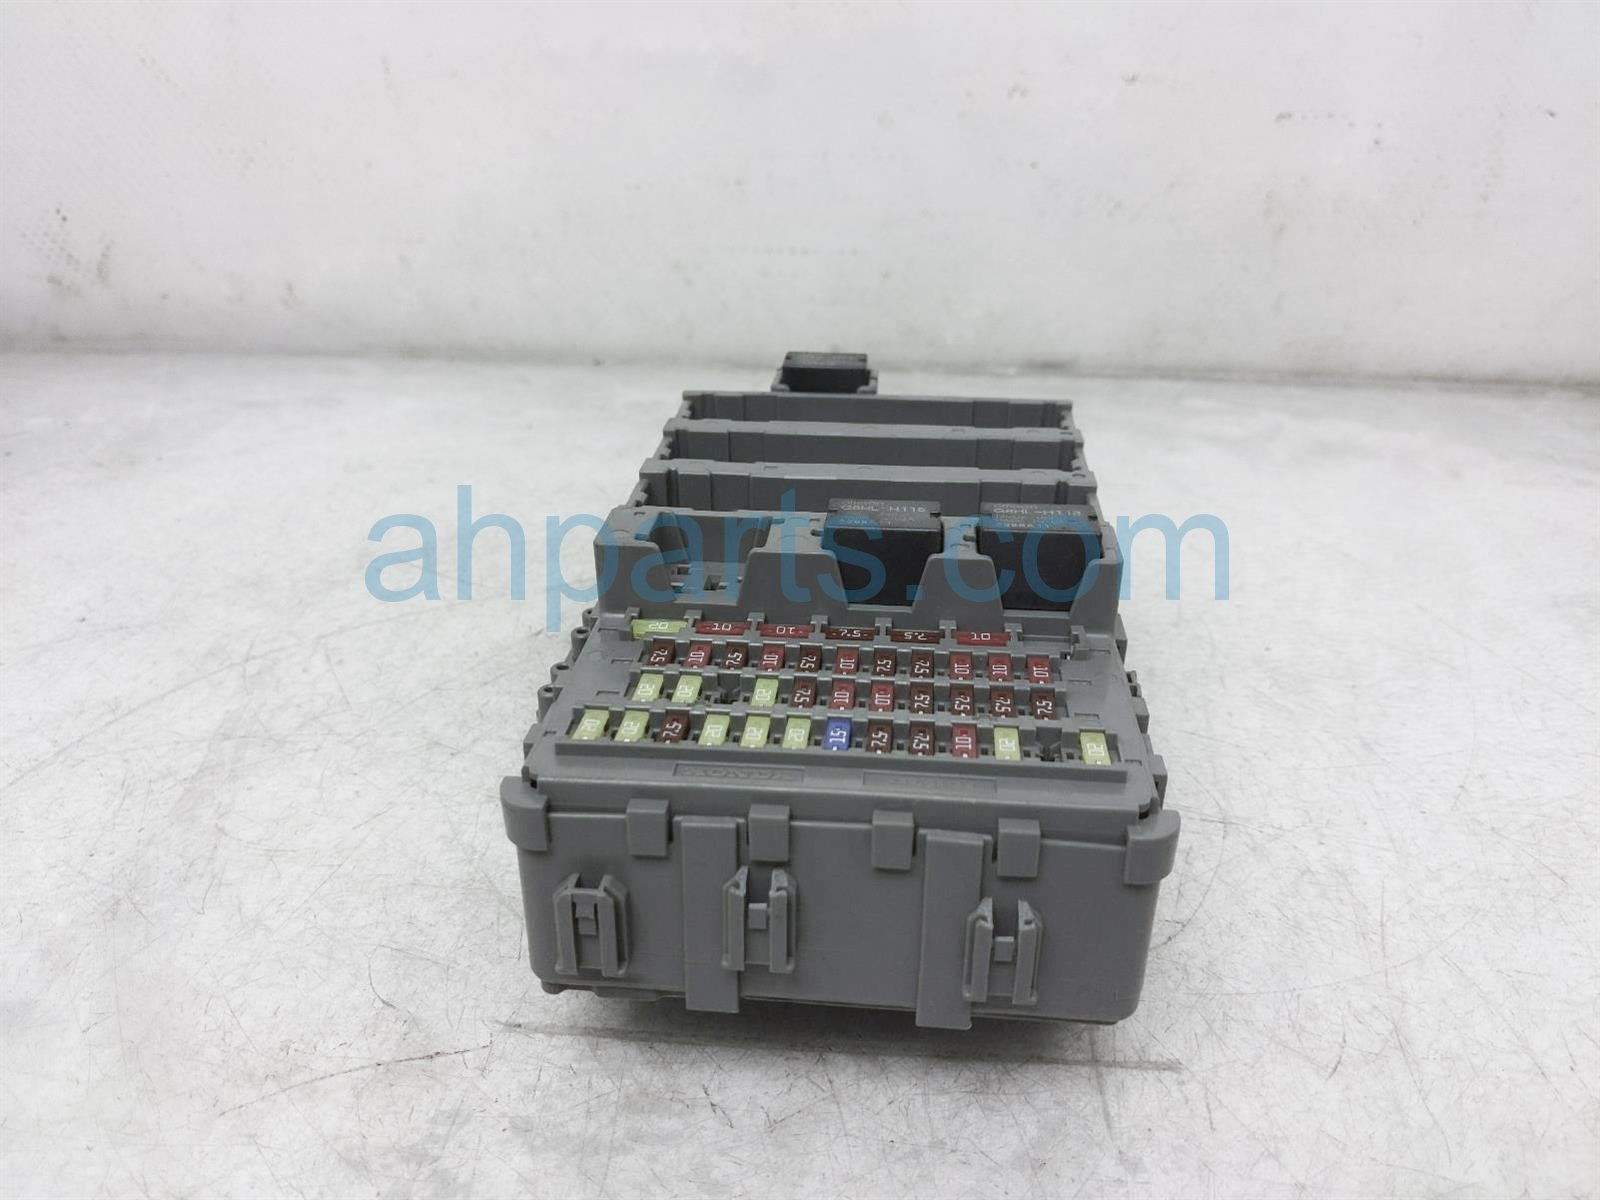 2019 Honda Pilot Cabin Fuse Box 38200 TG7 A12 Replacement